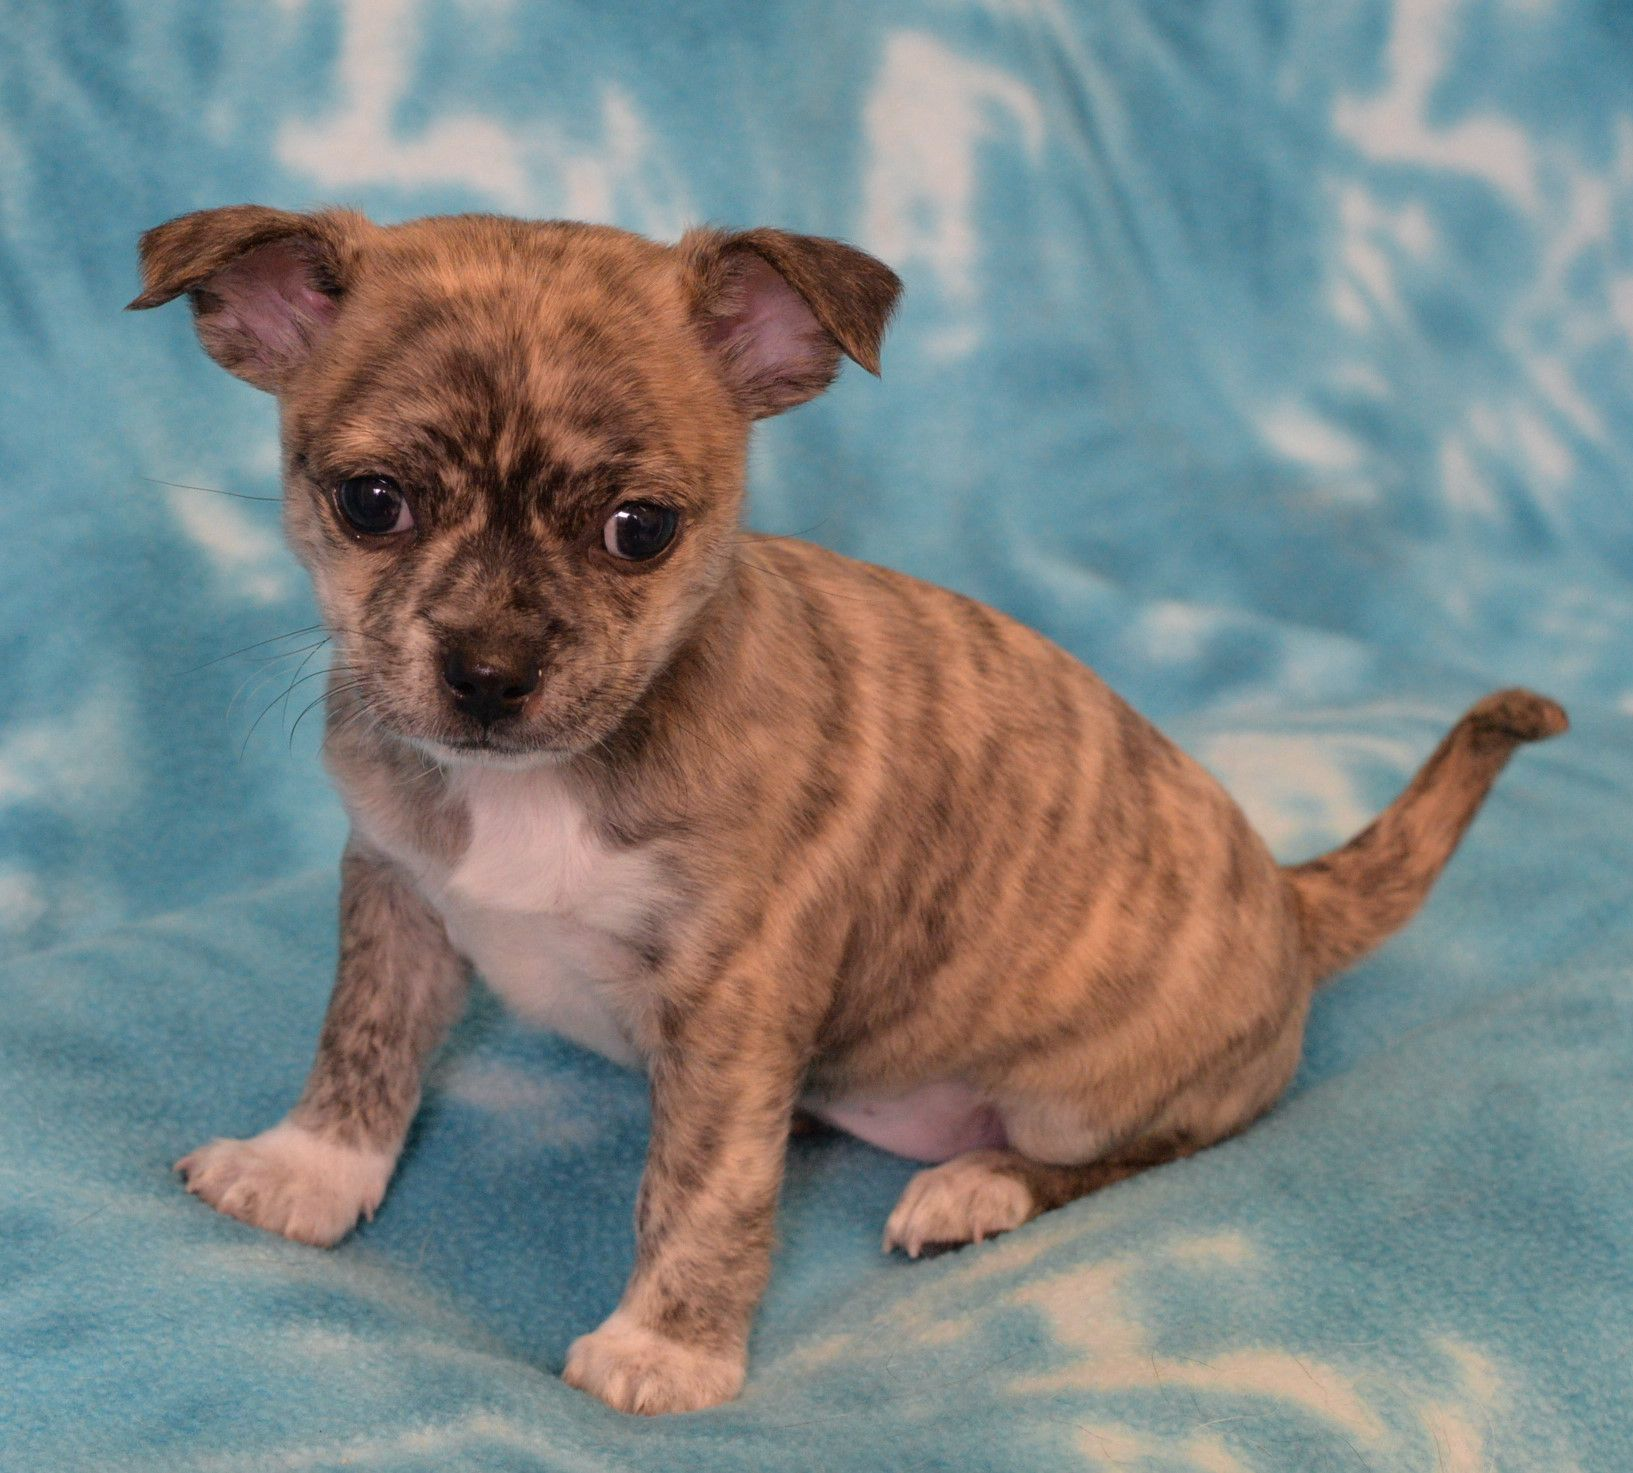 French Bullhuahua dog for Adoption in Eureka, CA. ADN